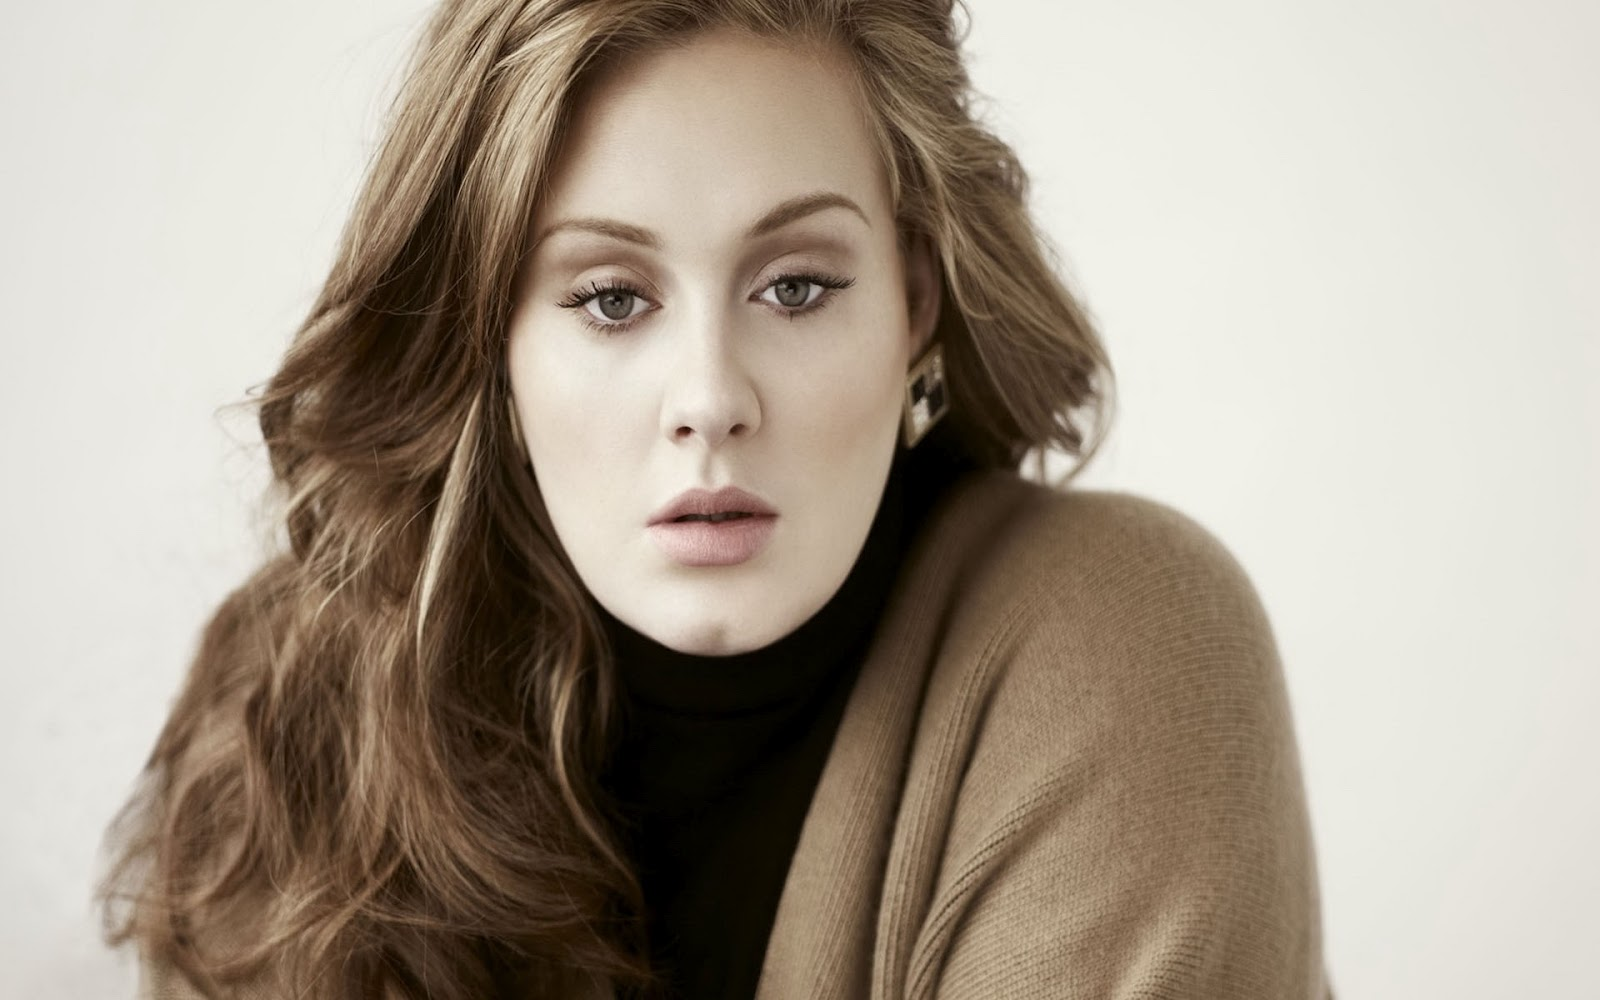 Adele Profile And Pictures, Wallpapers